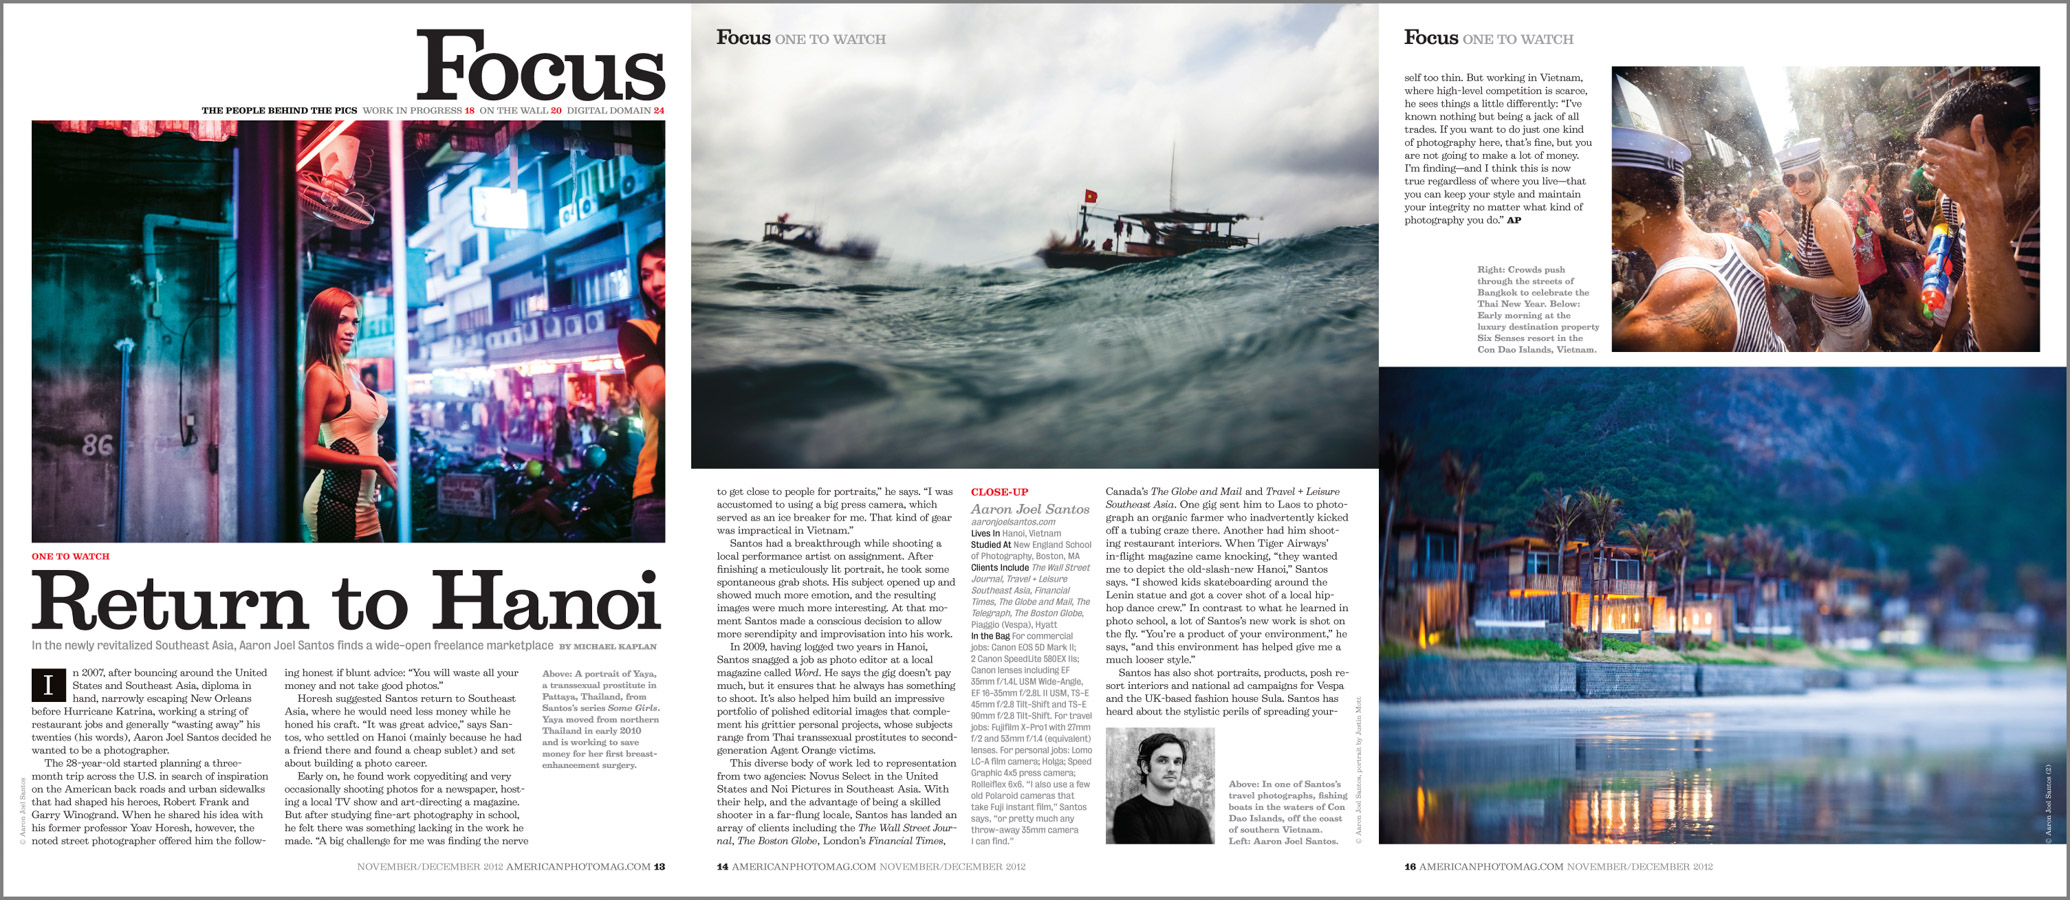 A profile piece on Yours Truly in American Photo Magazine.